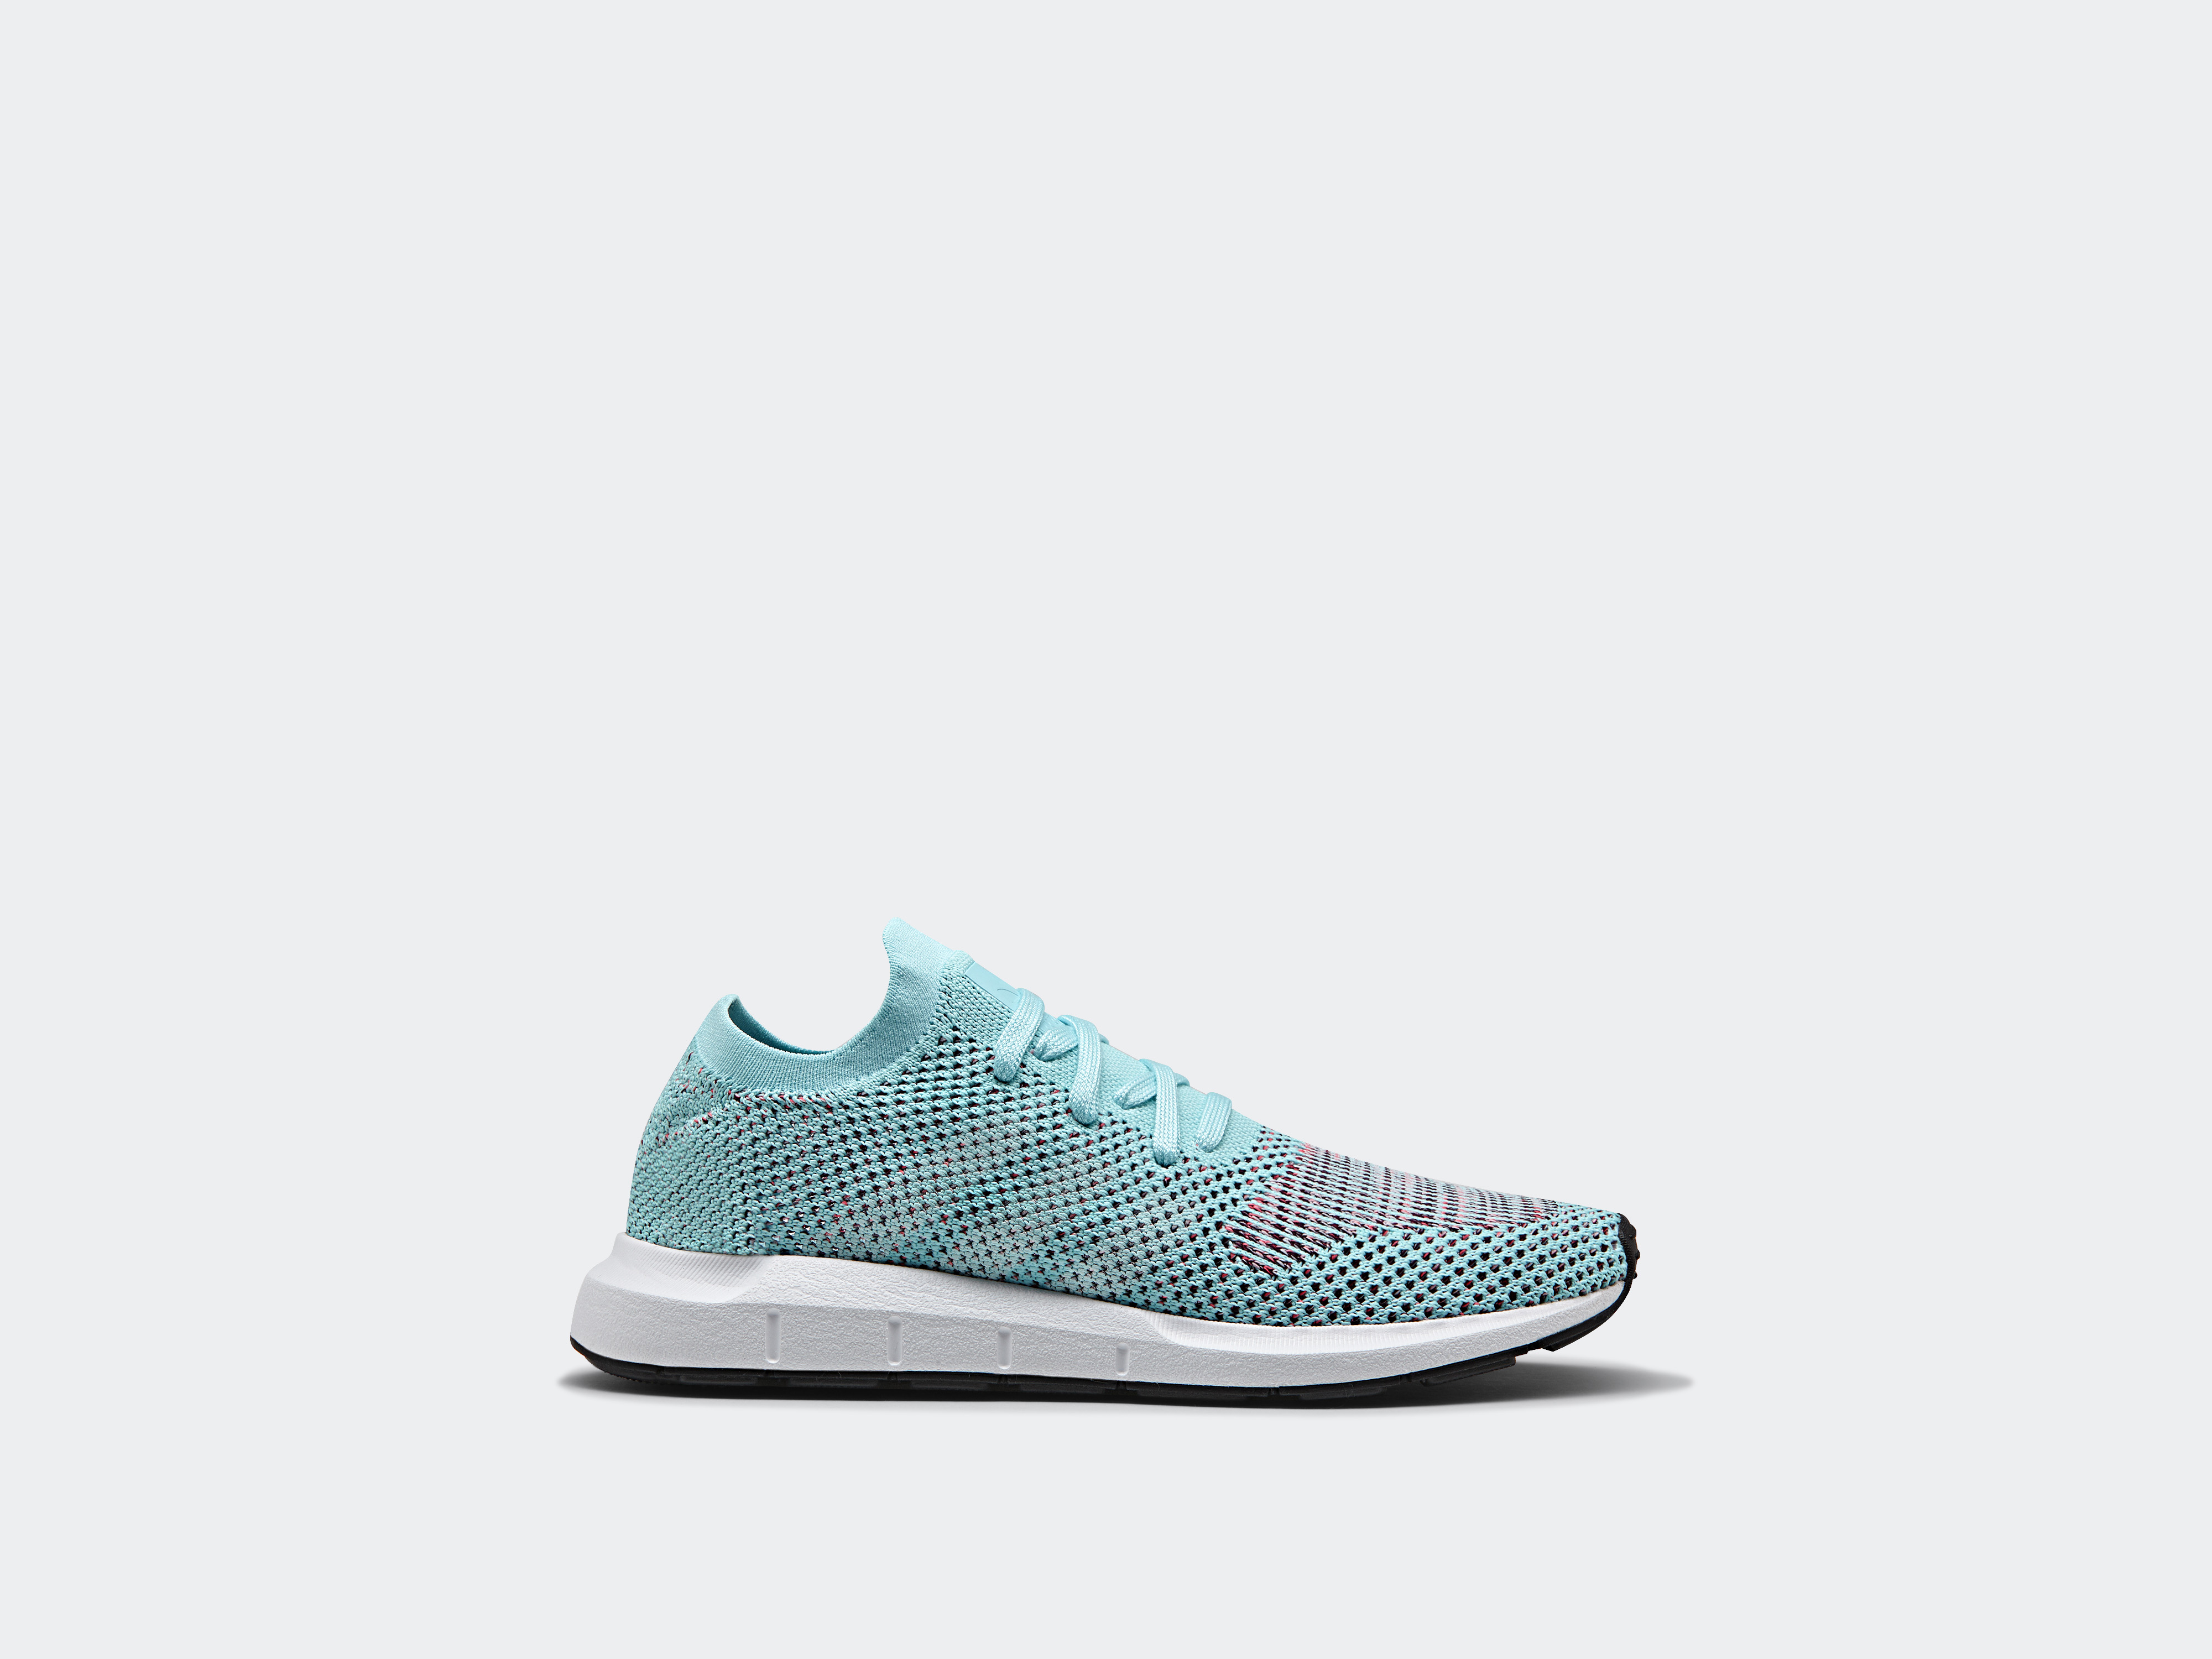 The Parley x adidas UltraBOOST 4.0 Drops This Month OK Mag